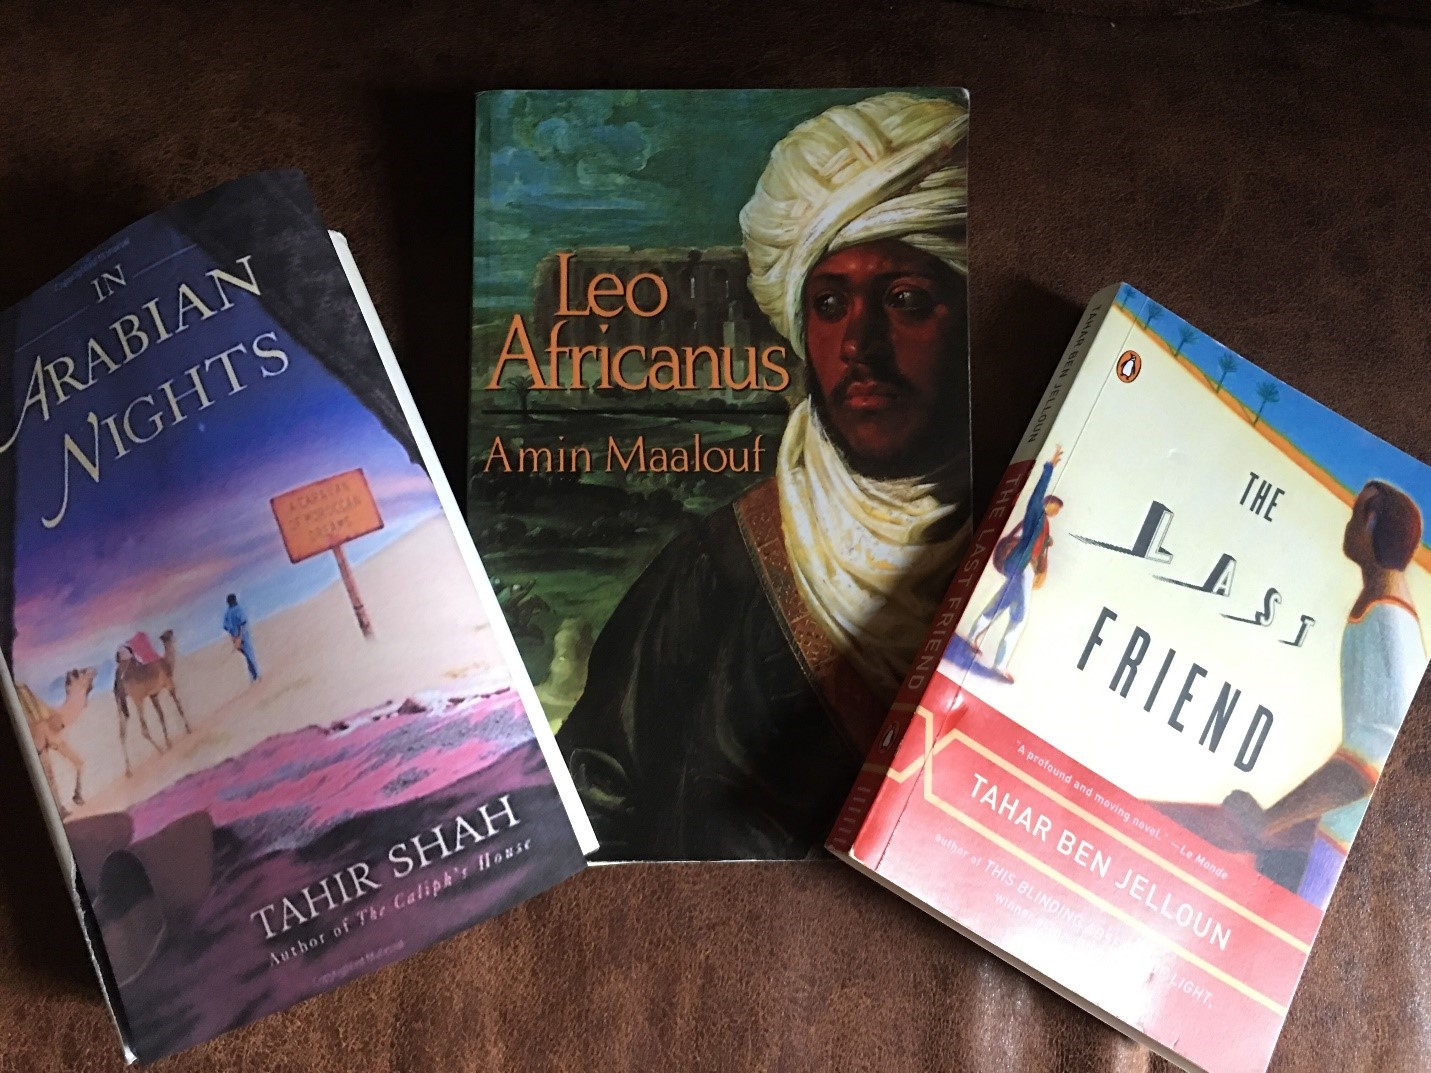 In Arabian Nights, by Tahir Shah; Leo Africanus, by Amin Maalouf; and The Last Friend, by Tahar ben Jelloun